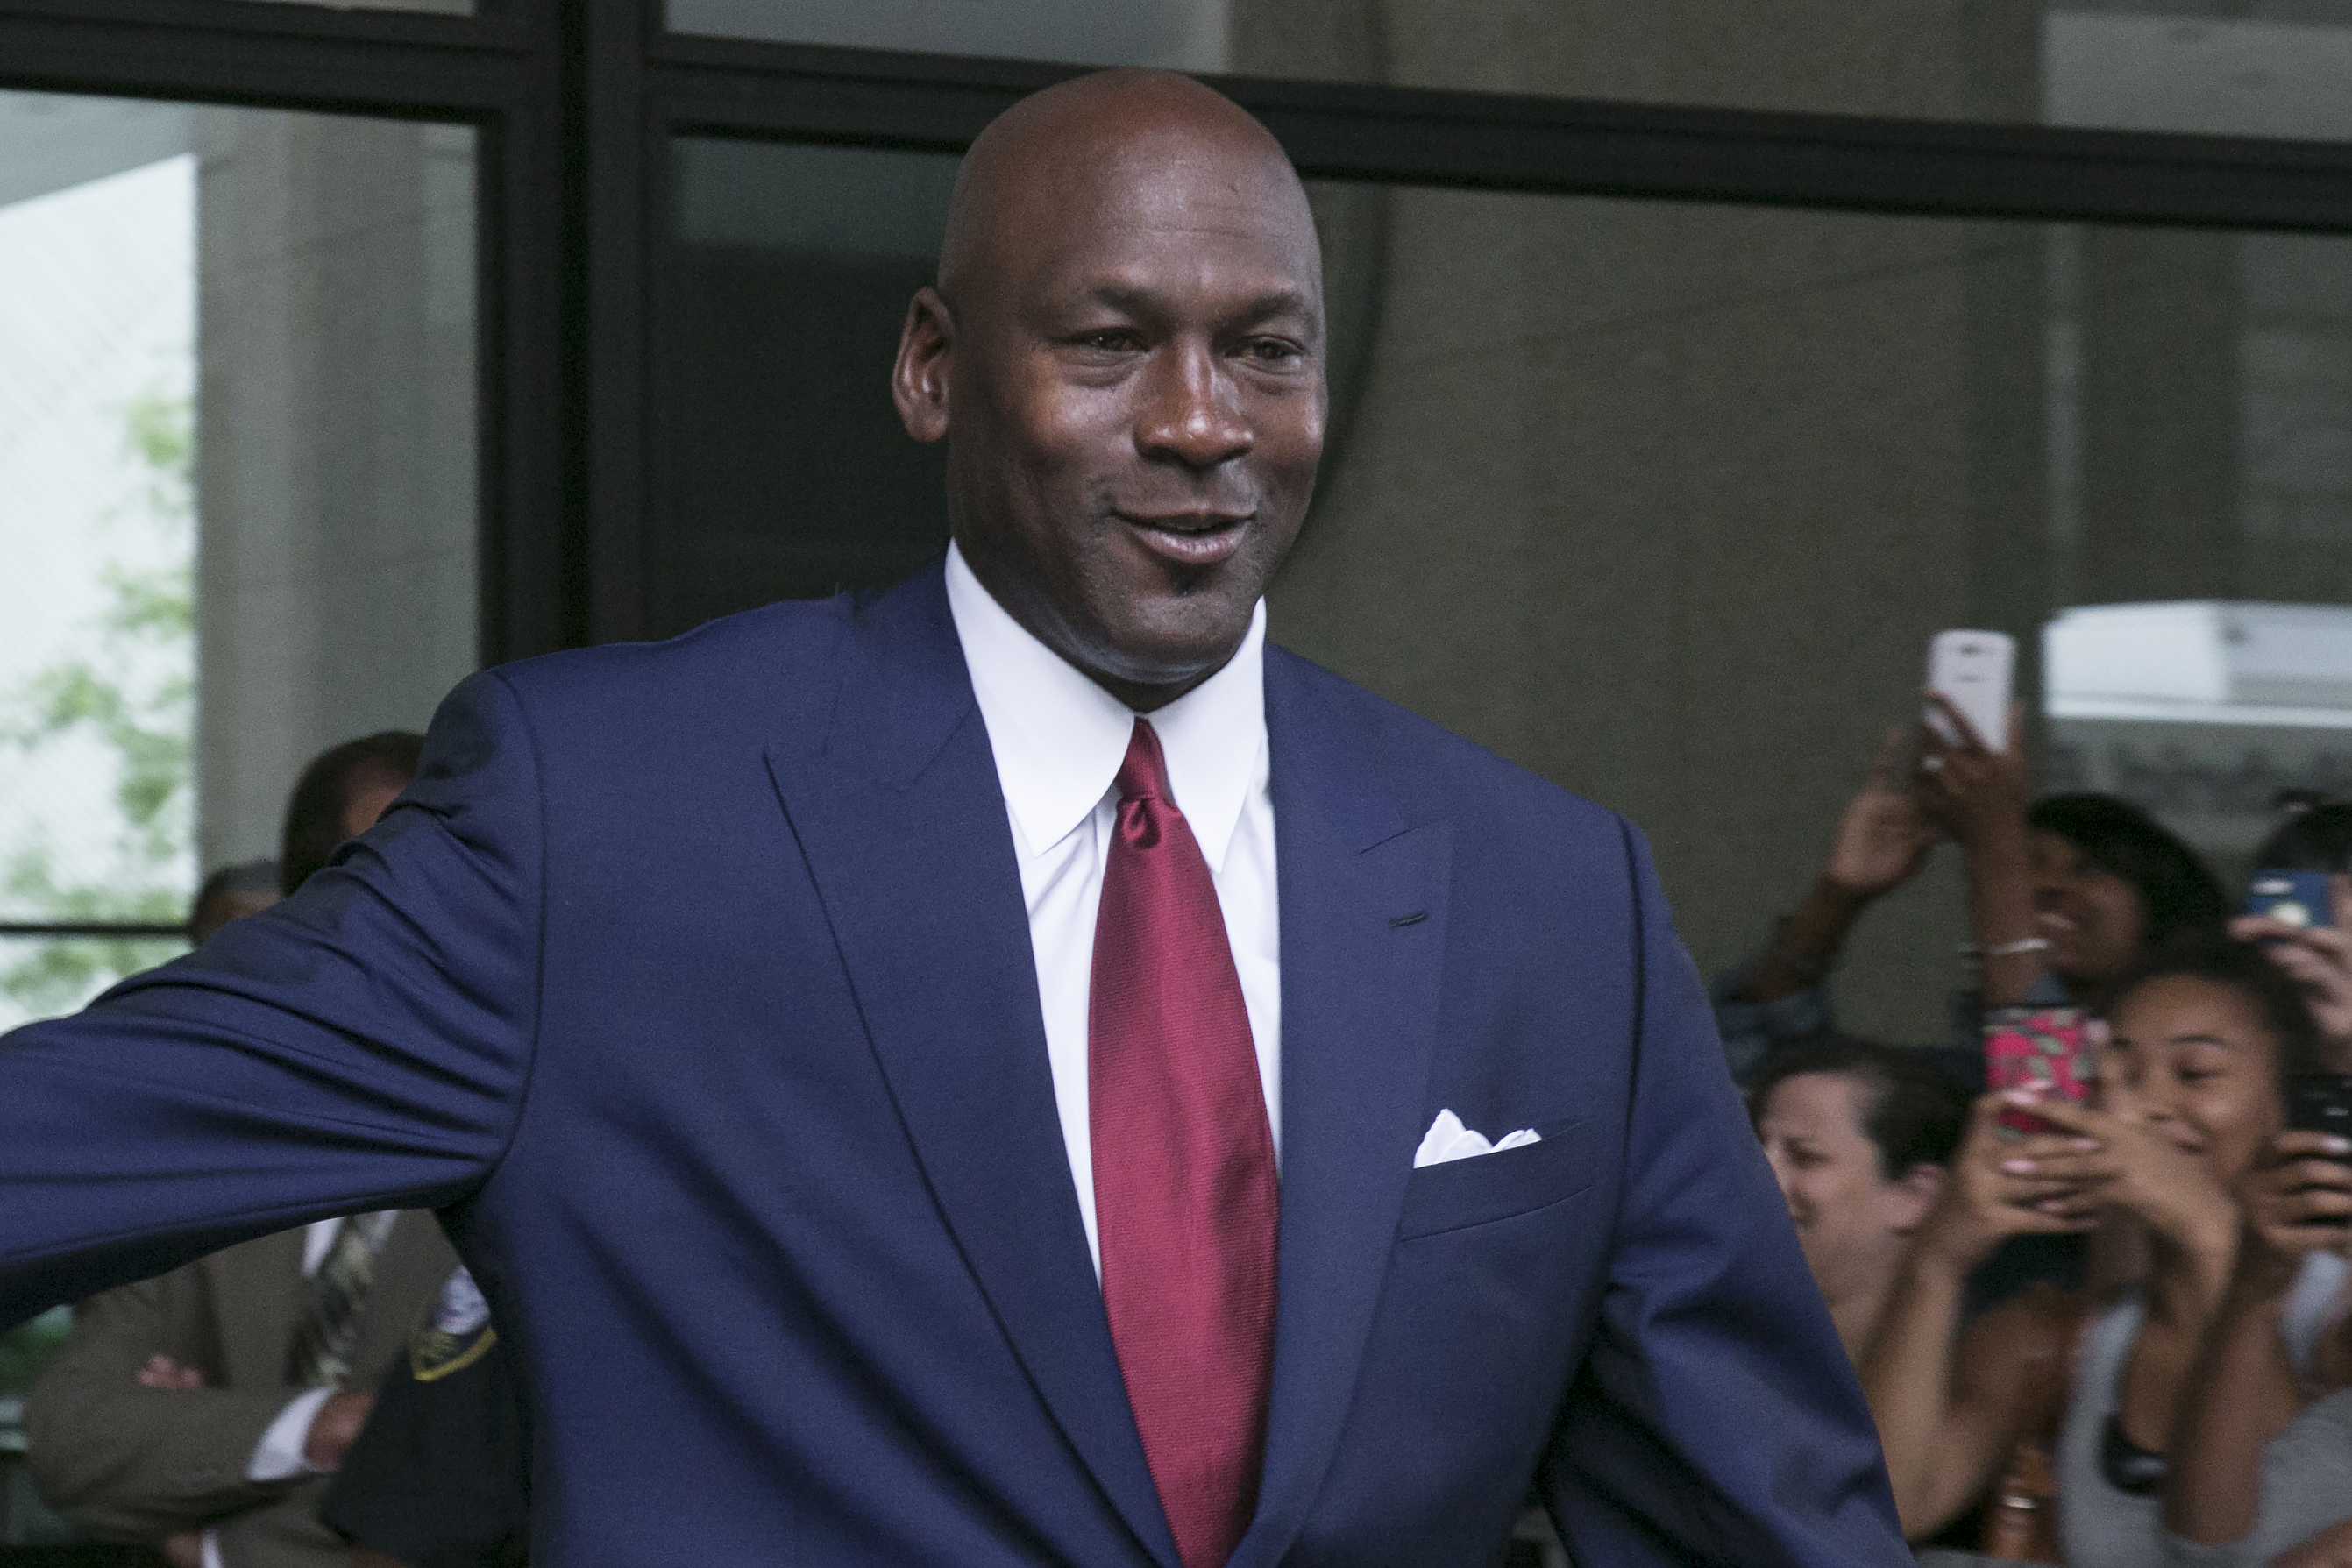 Early in his career, Michael Jordan was able to shop at Jewel after hours to avoid crowds of fans.